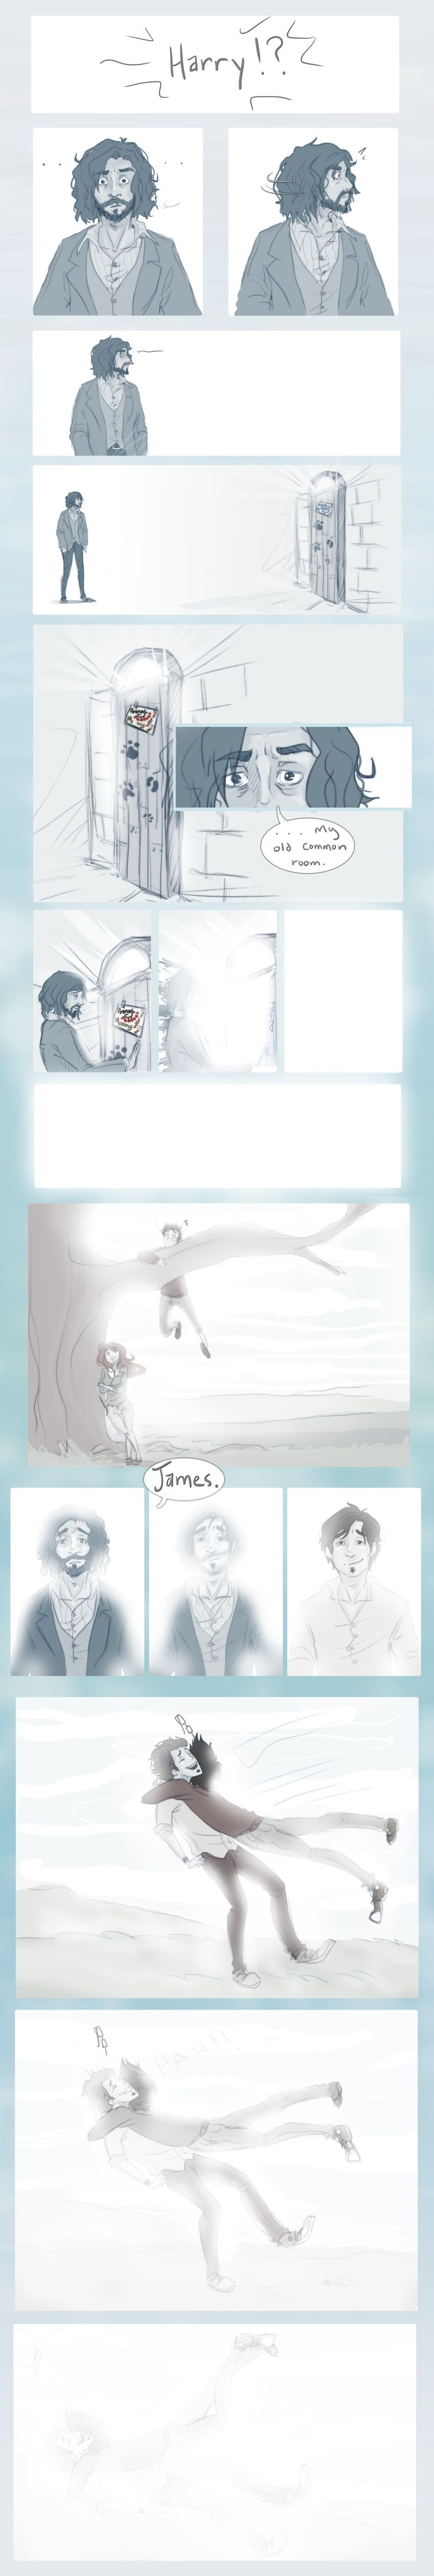 Beyond the Veil by *Avender on deviantART  Sirius Black and James Potter, beyond the Veil {sobs} >>> oh feels